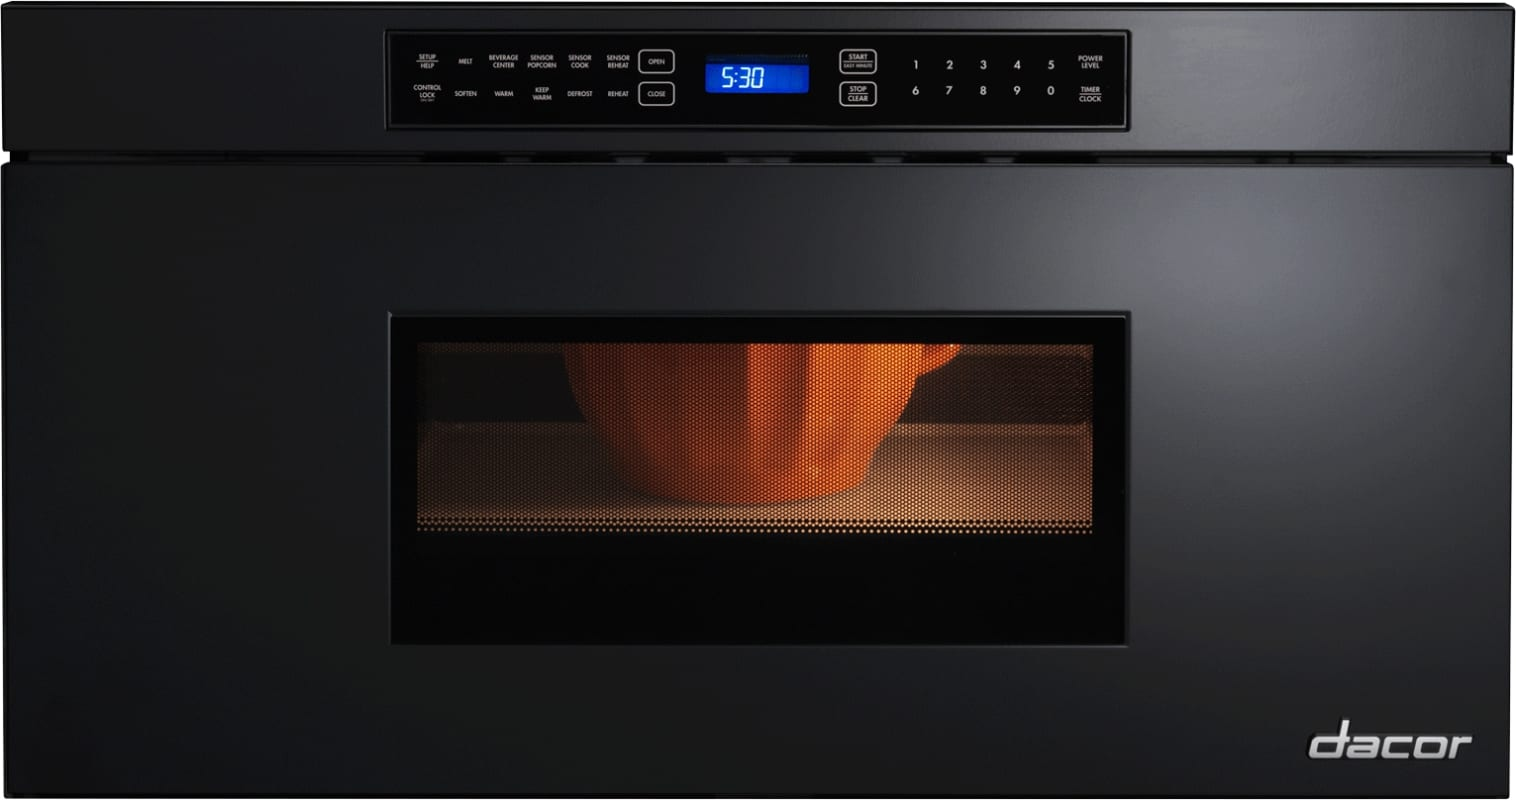 Dacor RNMD30 30 Inch Wide 1.2 Cu. Ft. 950 Watt Heritage Drawer Microwave photo